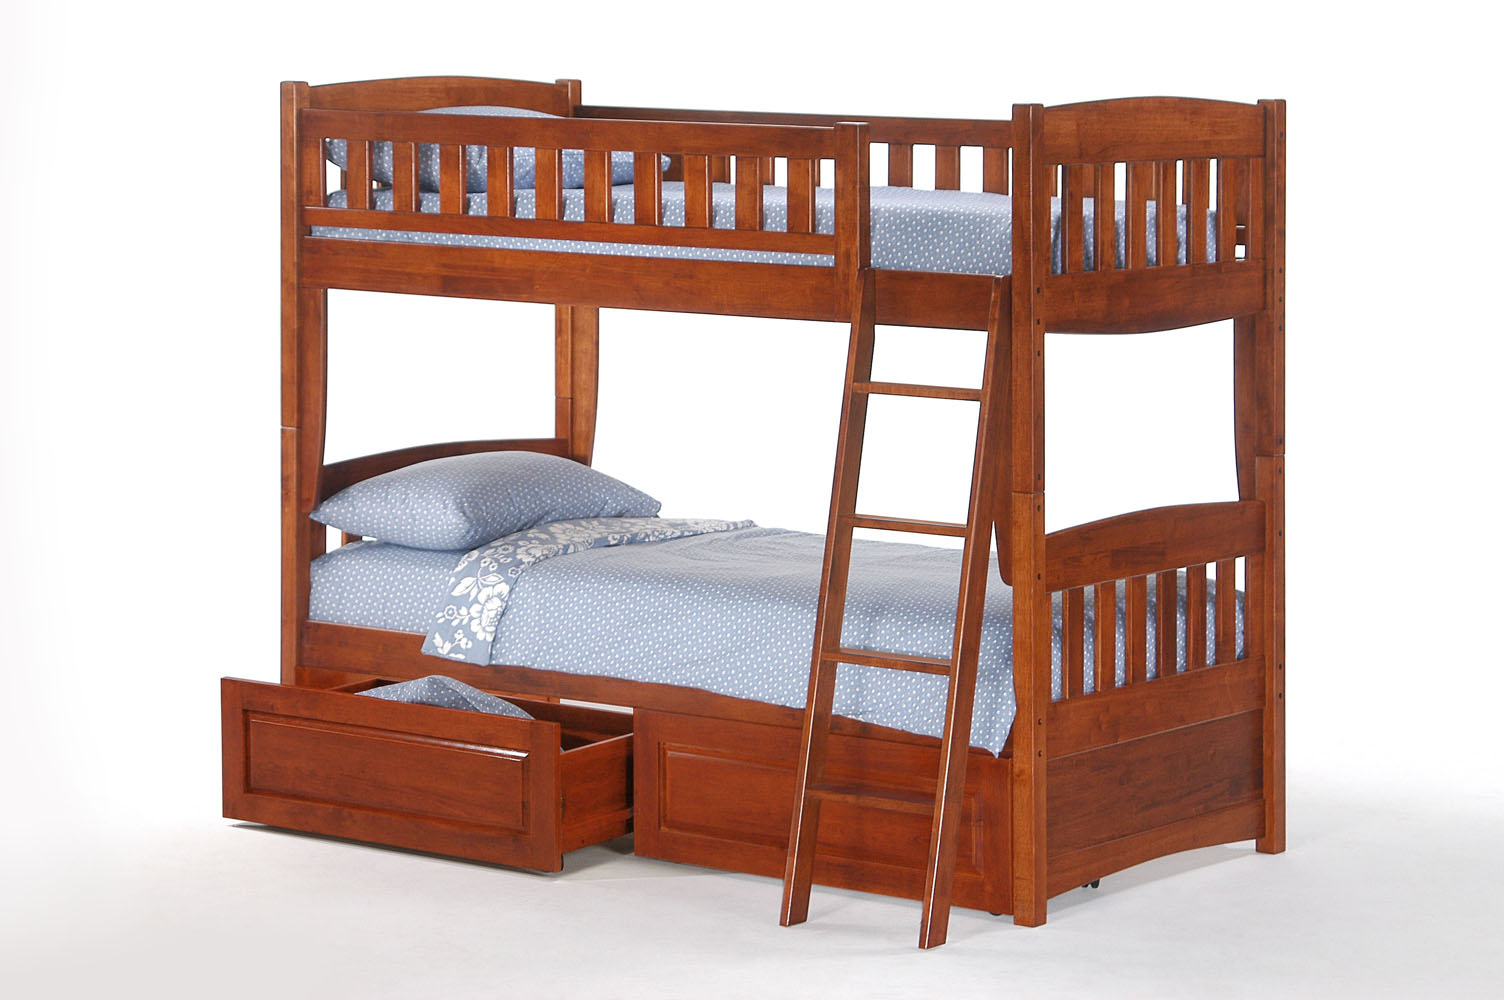 Bunk Beds Futon D Or Natural Mattressesfuton D Or Natural